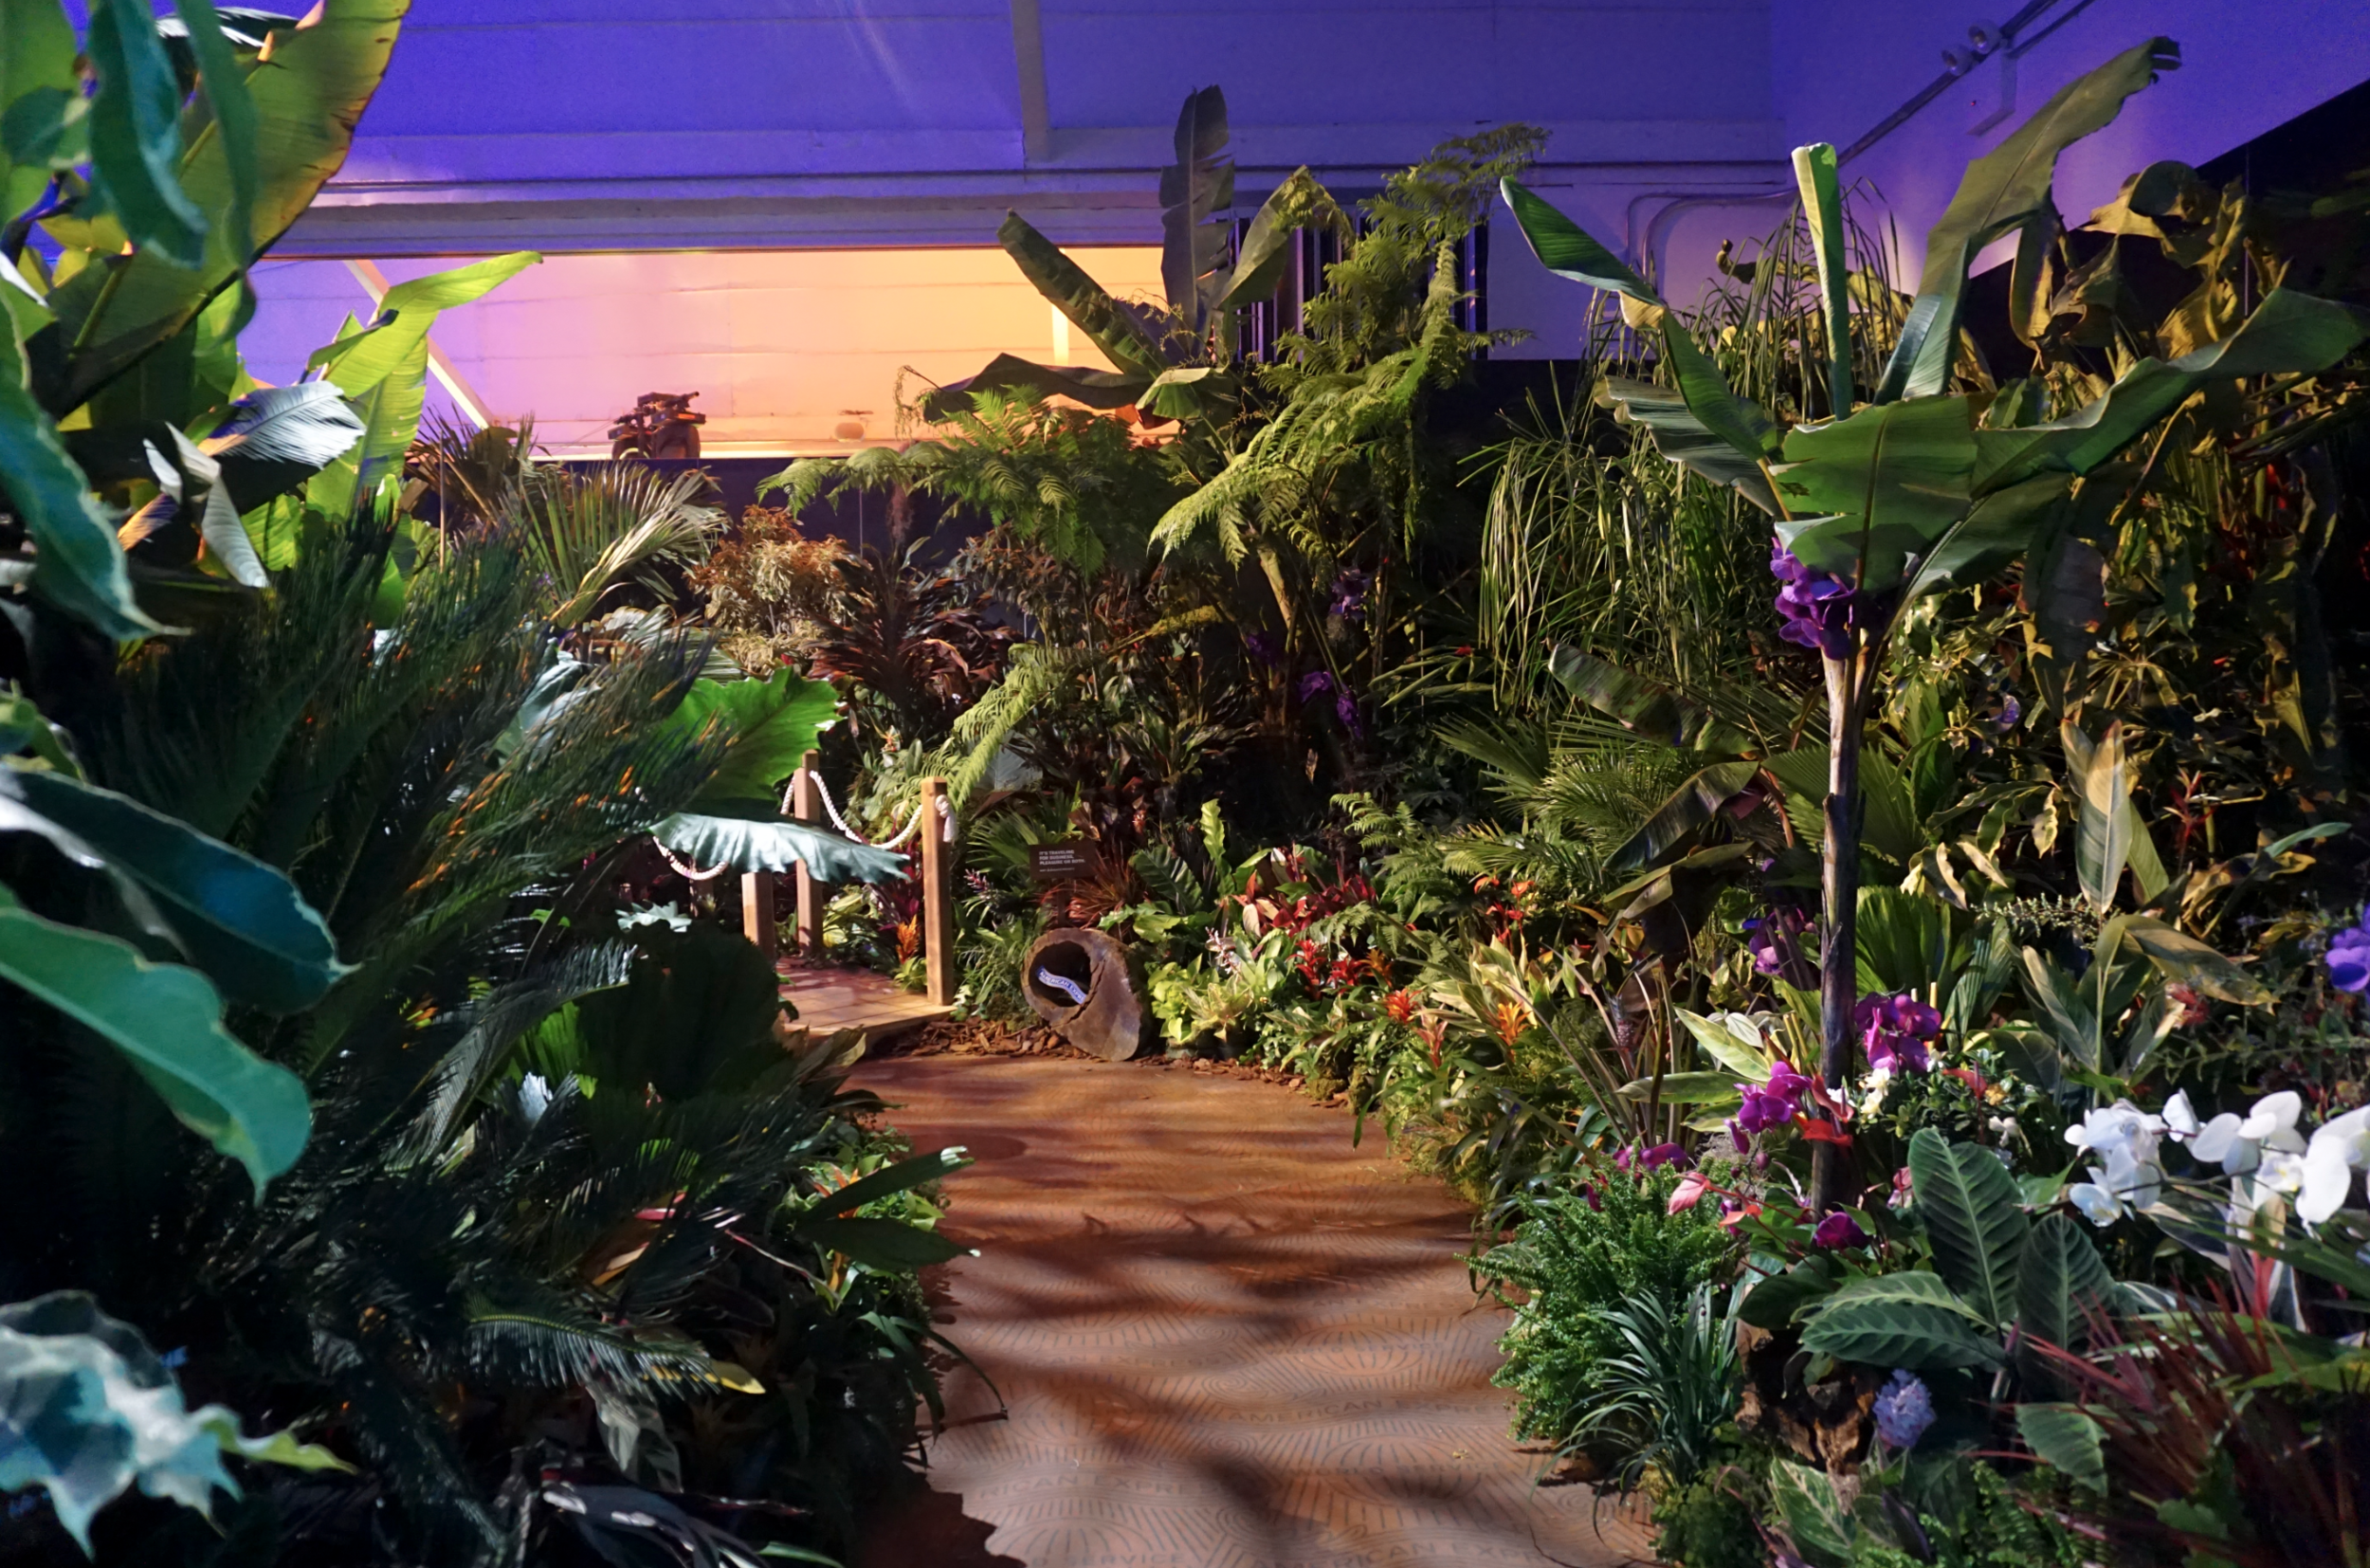 The tropical rain forest room where guests were encouraged to meditate in a fomo-worthy environment